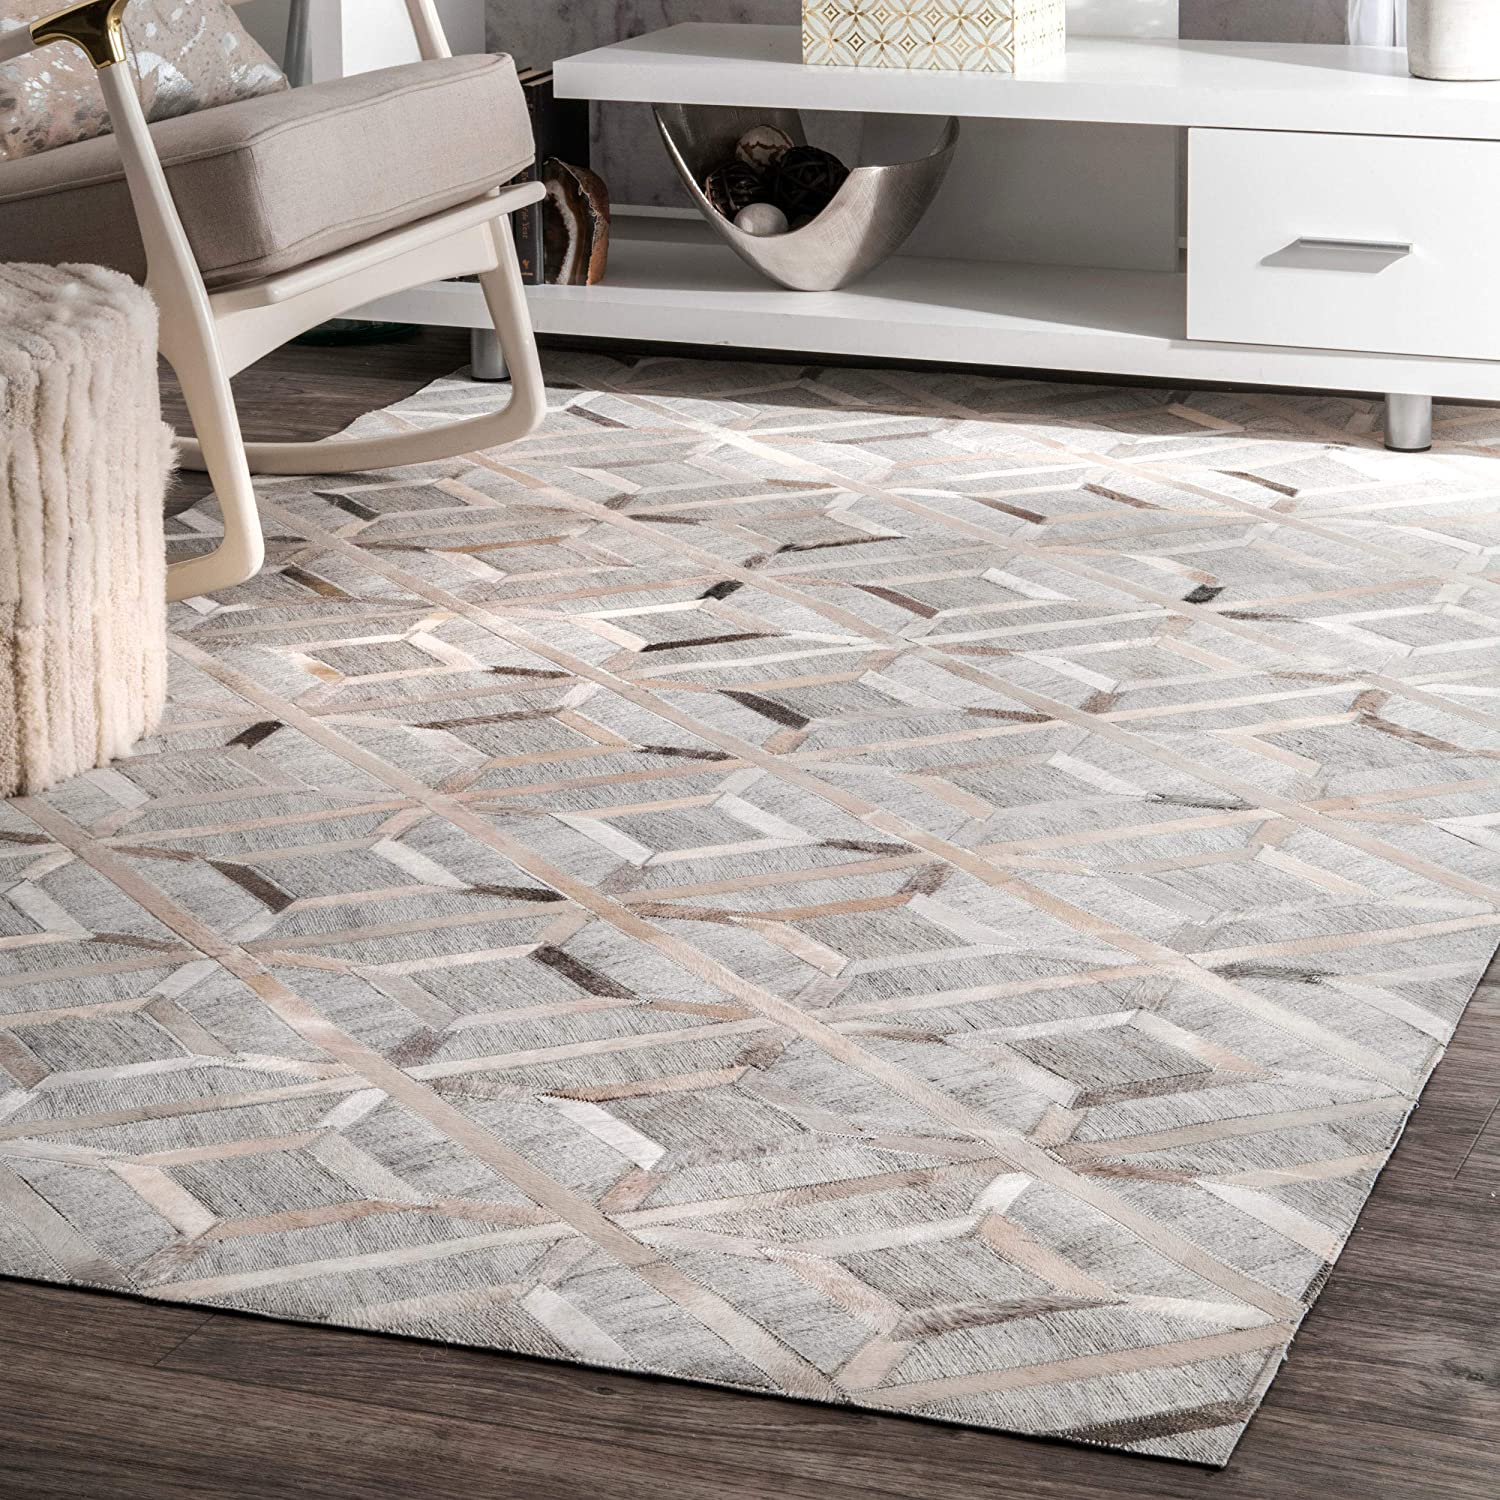 Nuloom Cowhide Chanda Area Rug 5 X 8 Gray Furniture Decor